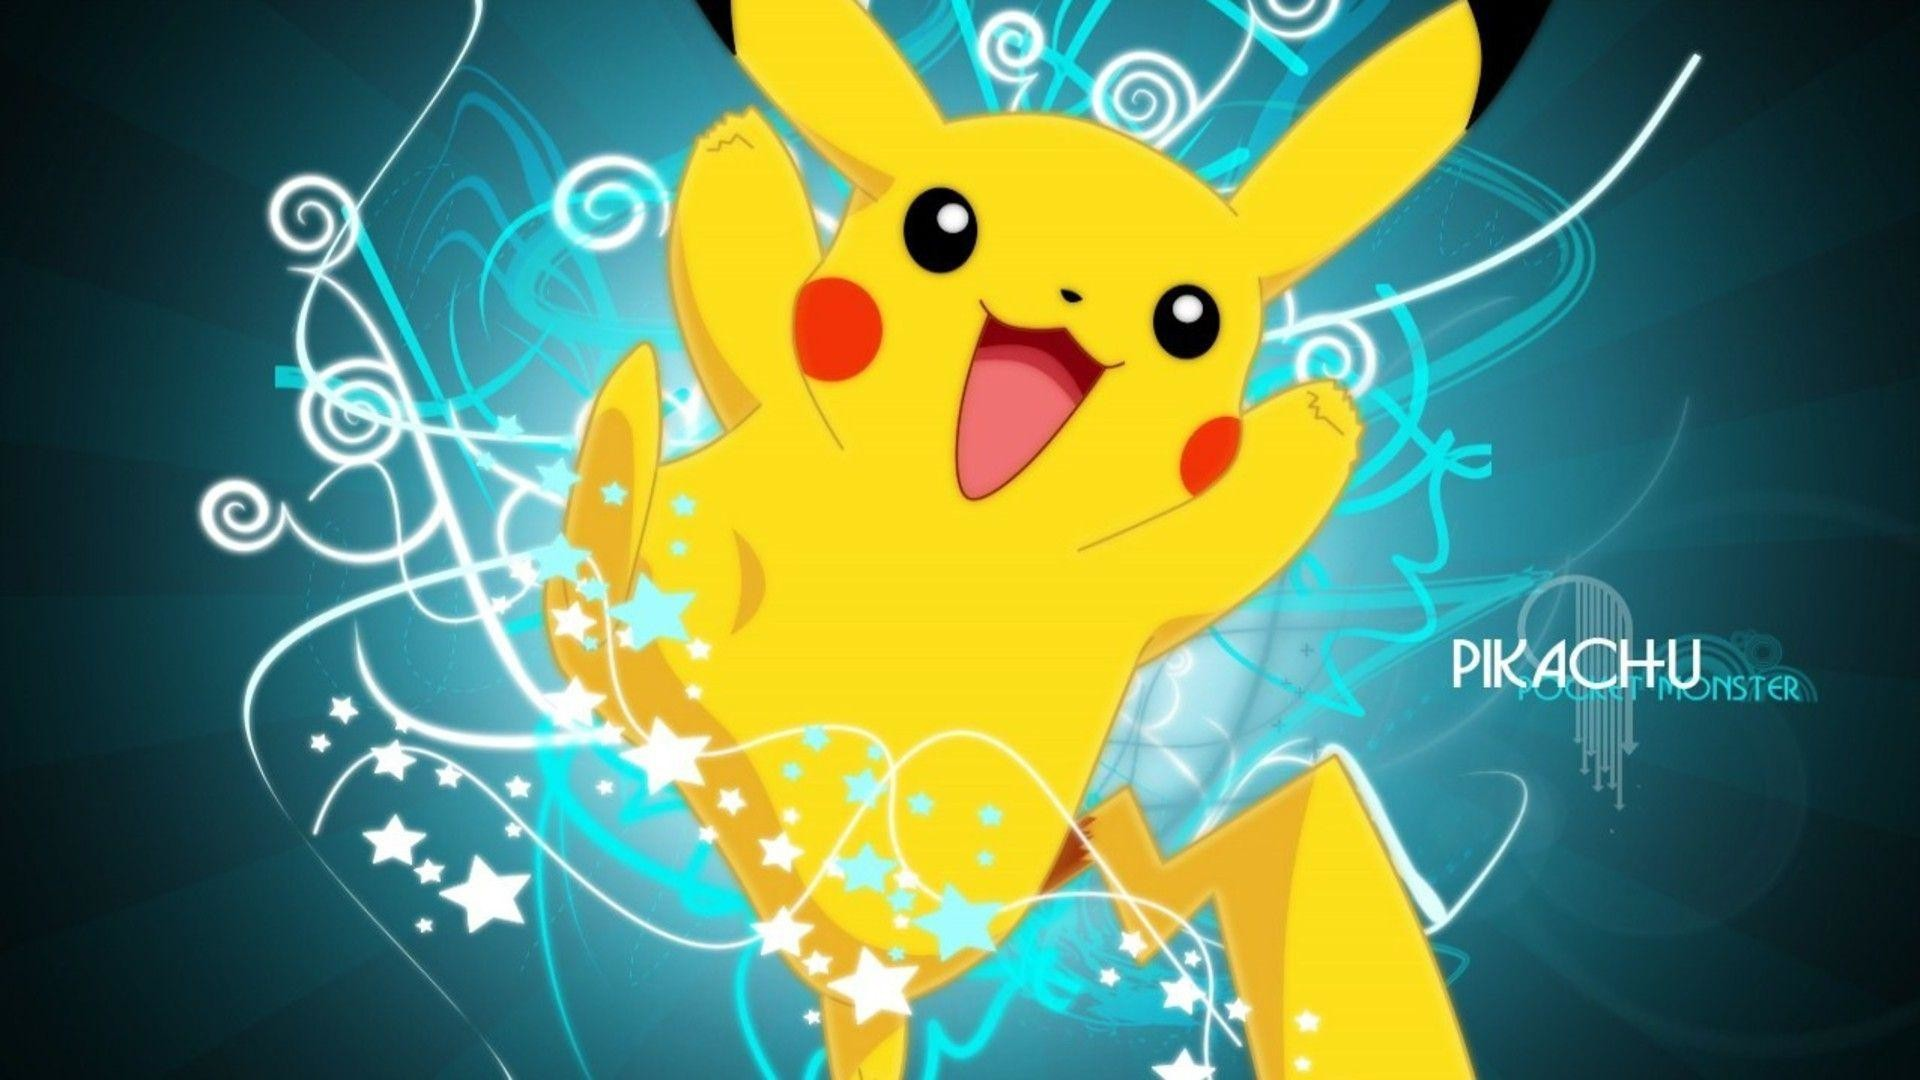 1920x1080 Wallpapers For > Pikachu Wallpapers Hd